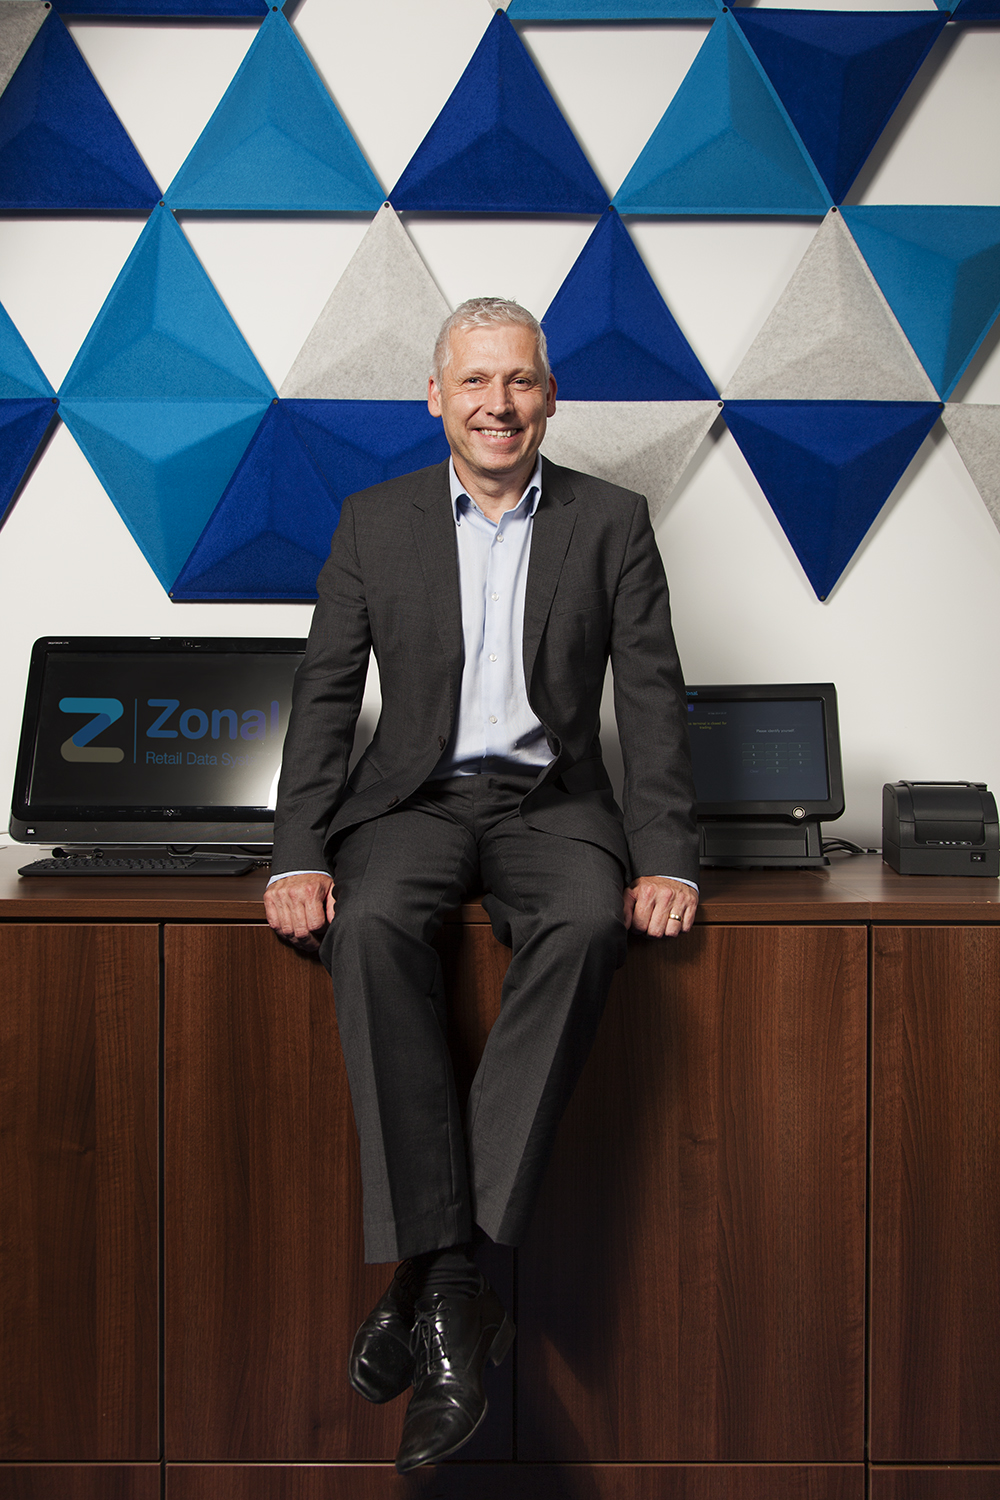 Stuart Mclean CEO of Zonal Retail Data Systems. Shot at their Haed Office in Edinburgh.